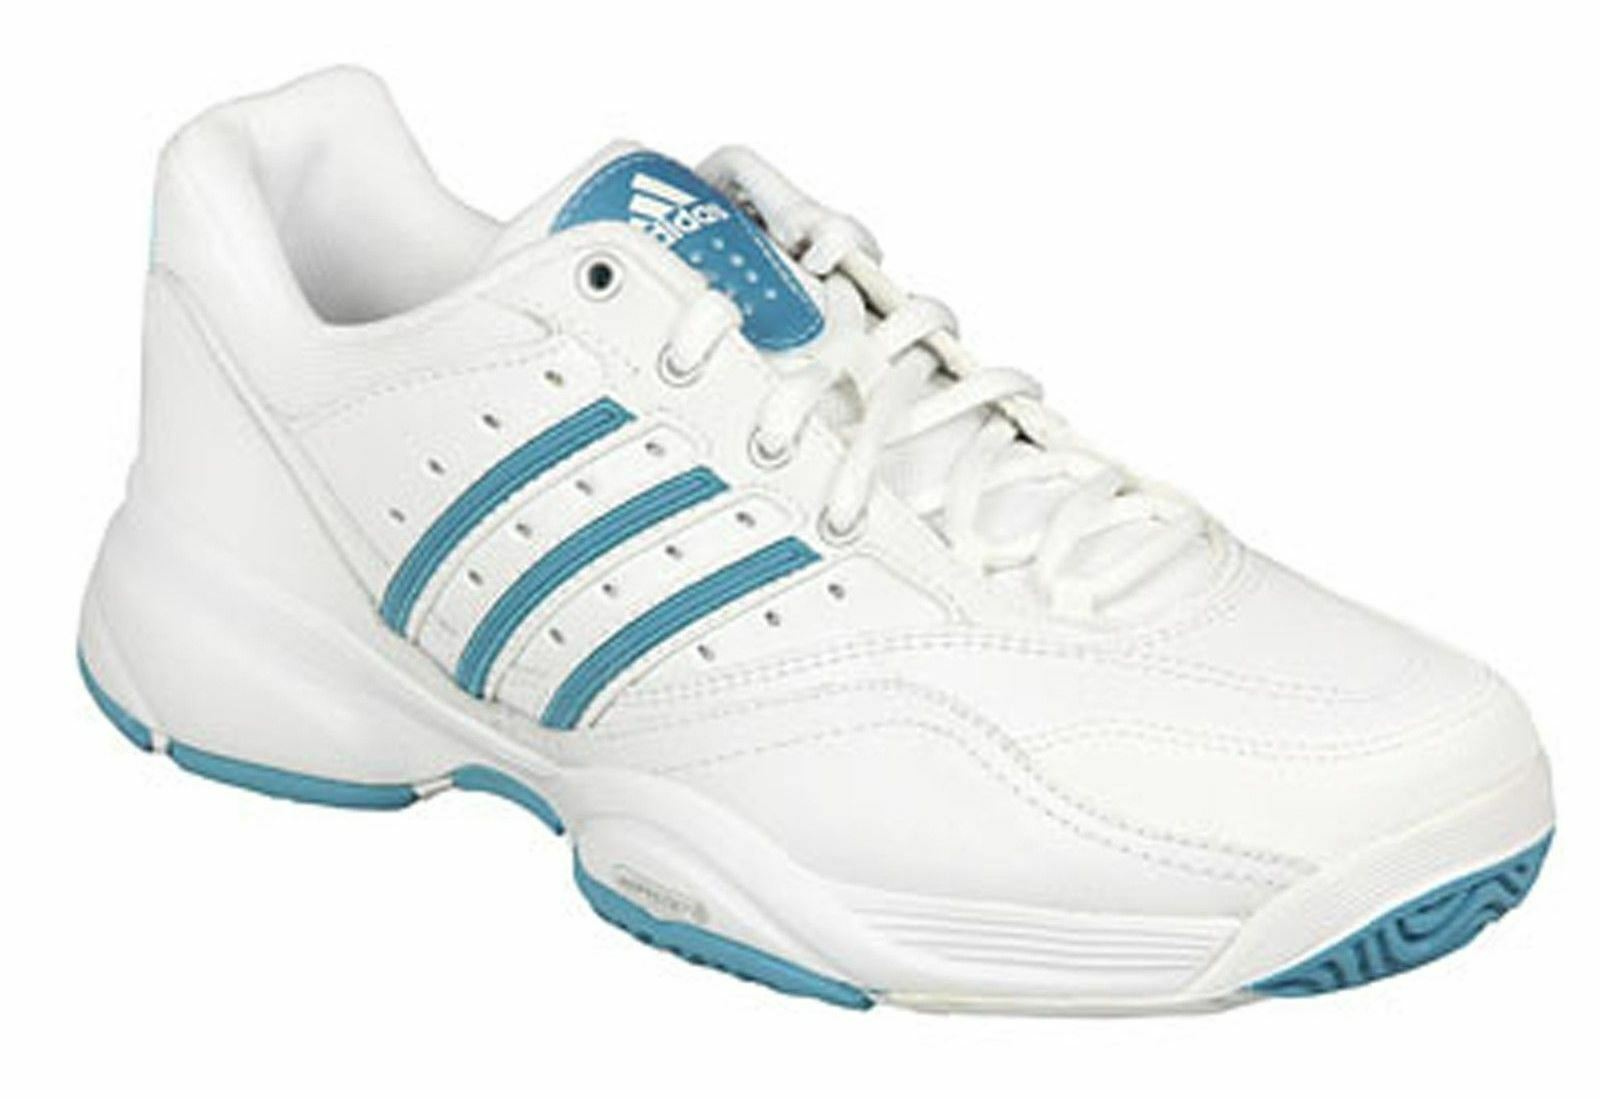 ADIDAS Ambition Str IV G14999  Tennis, Trainer Size: 7    99  New in Box